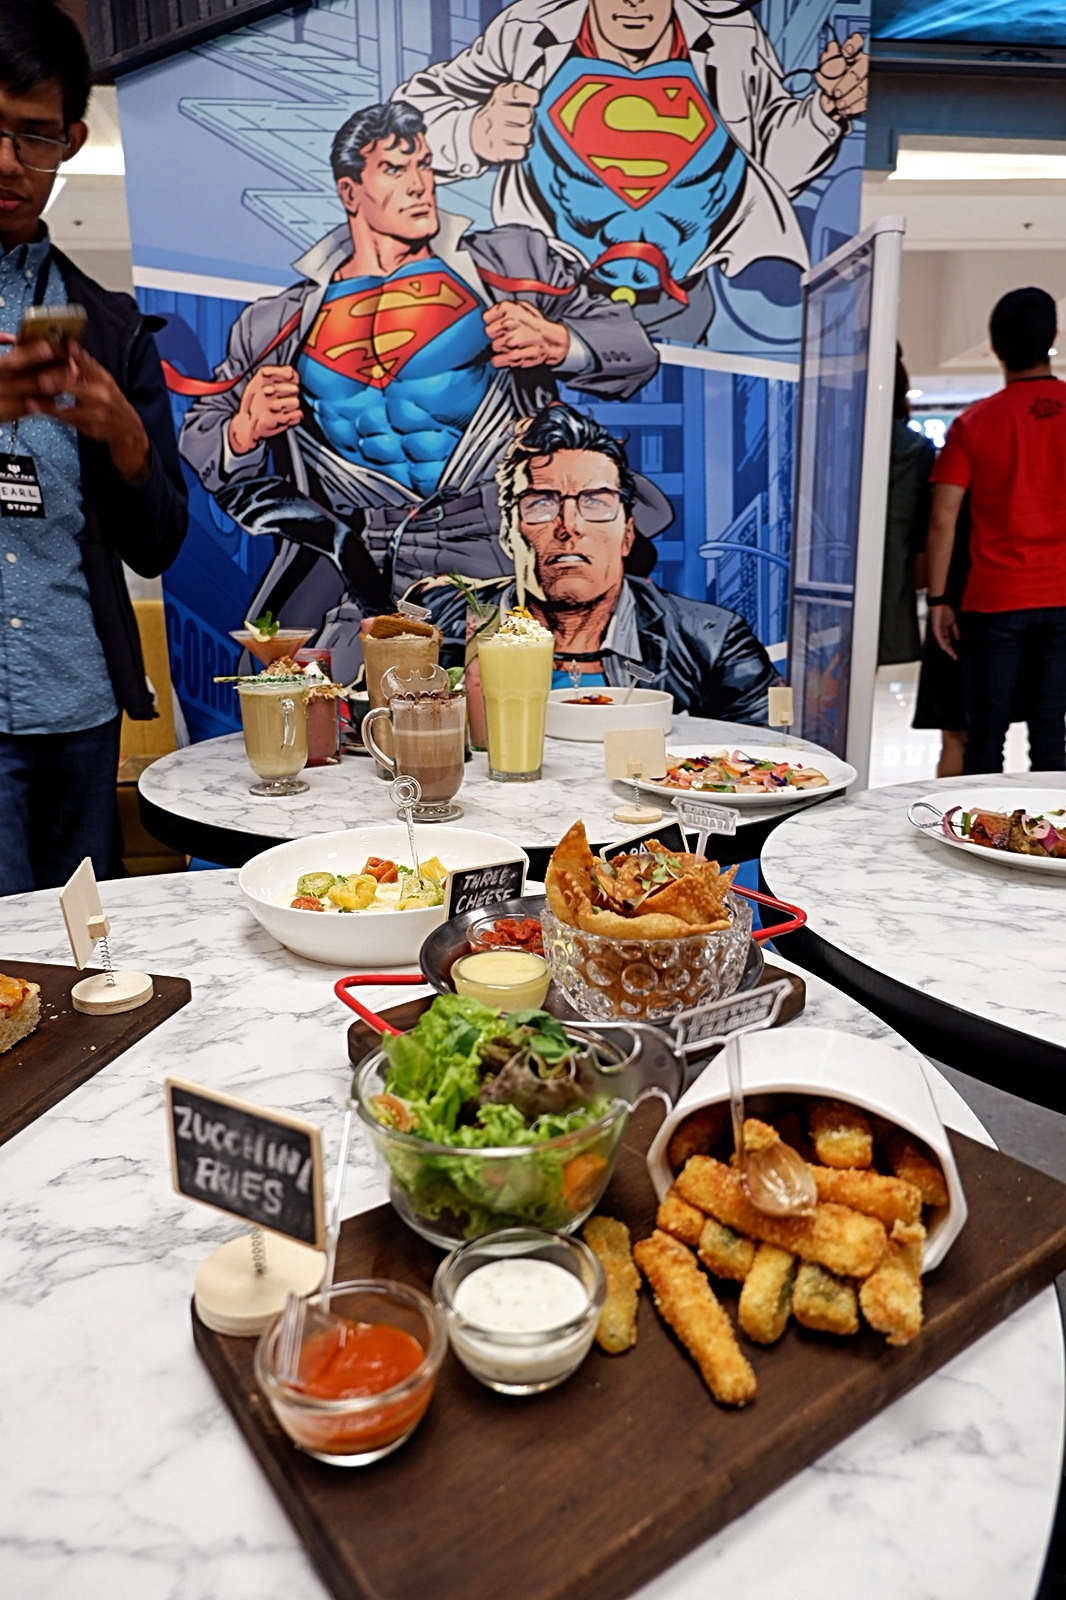 DC Super Heroes Cafe